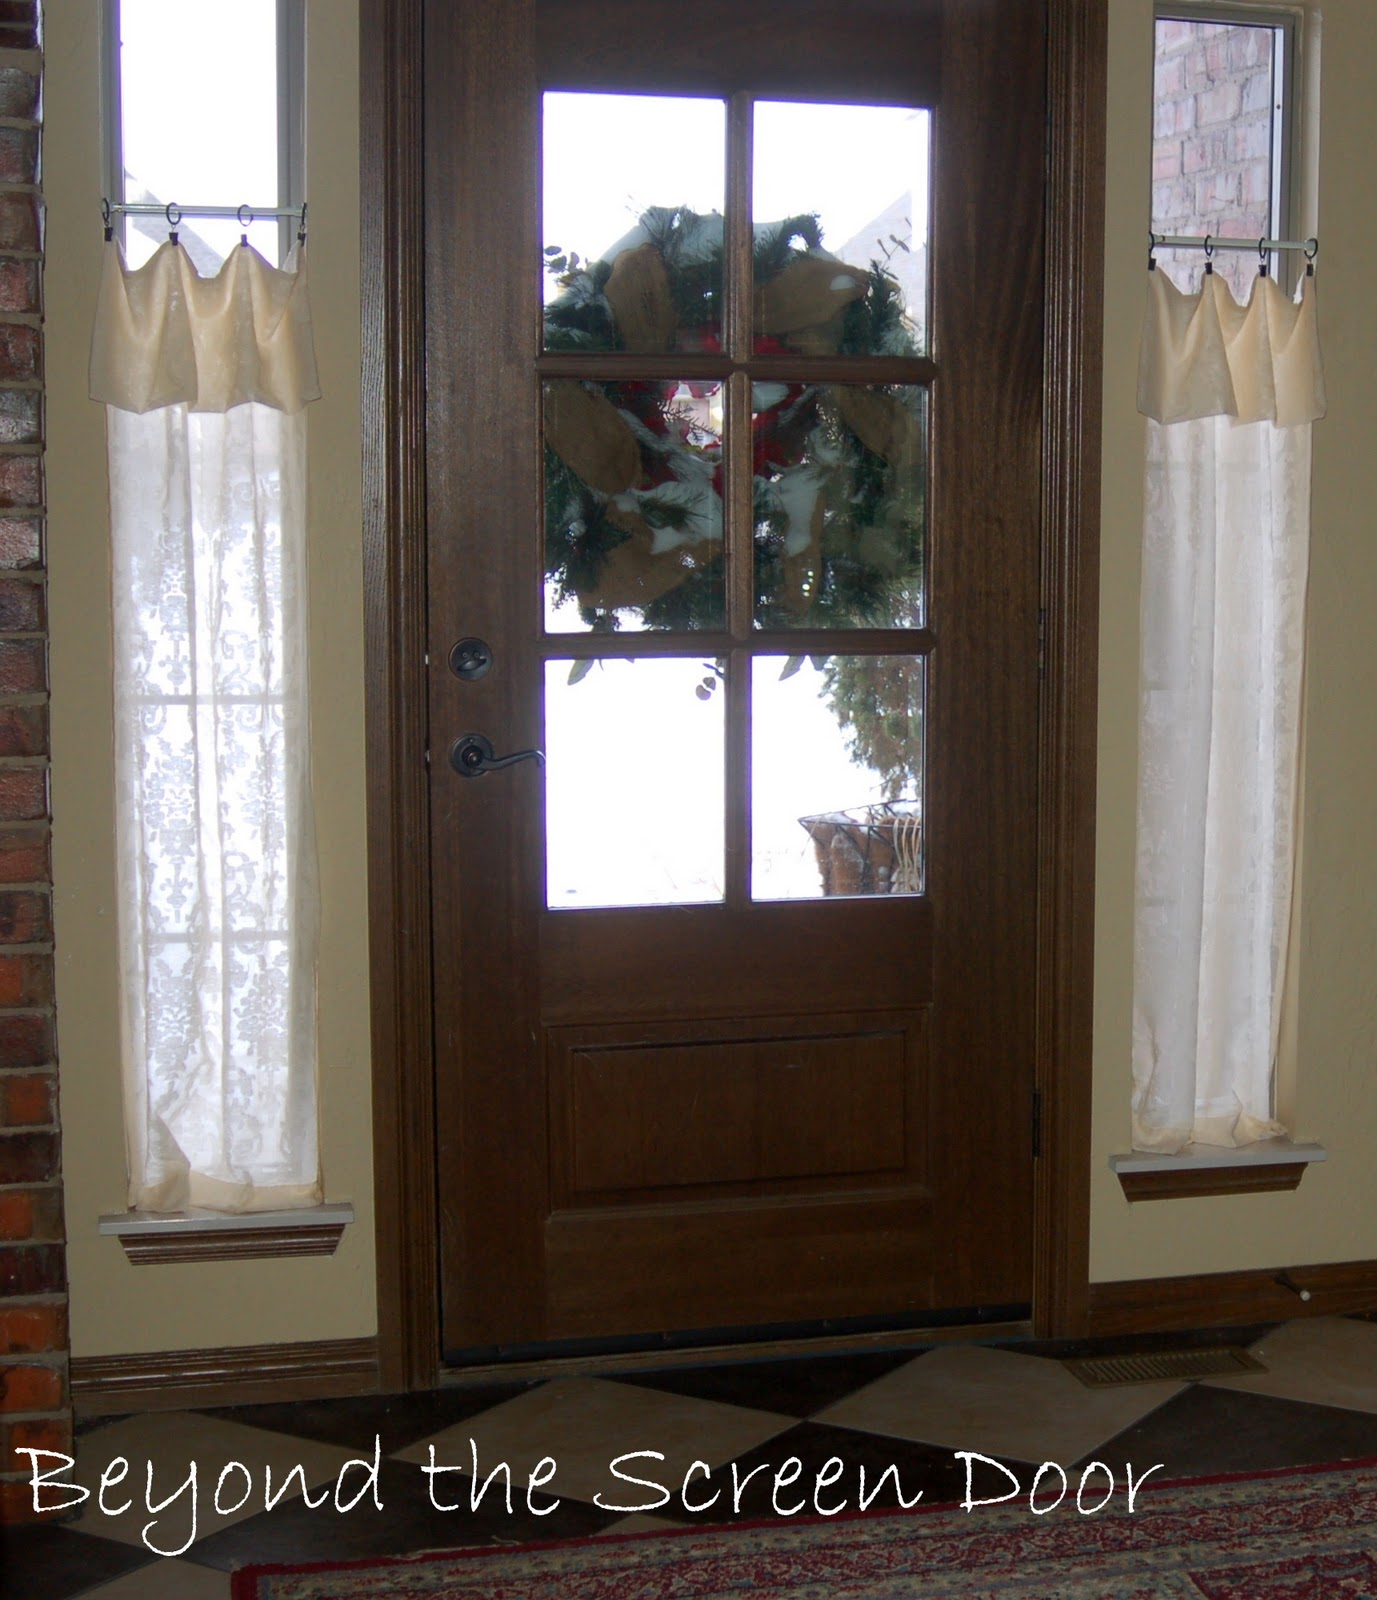 Glass front door window treatments - Original Window Treatments Were Simple Patterned Sheers Each Curtain